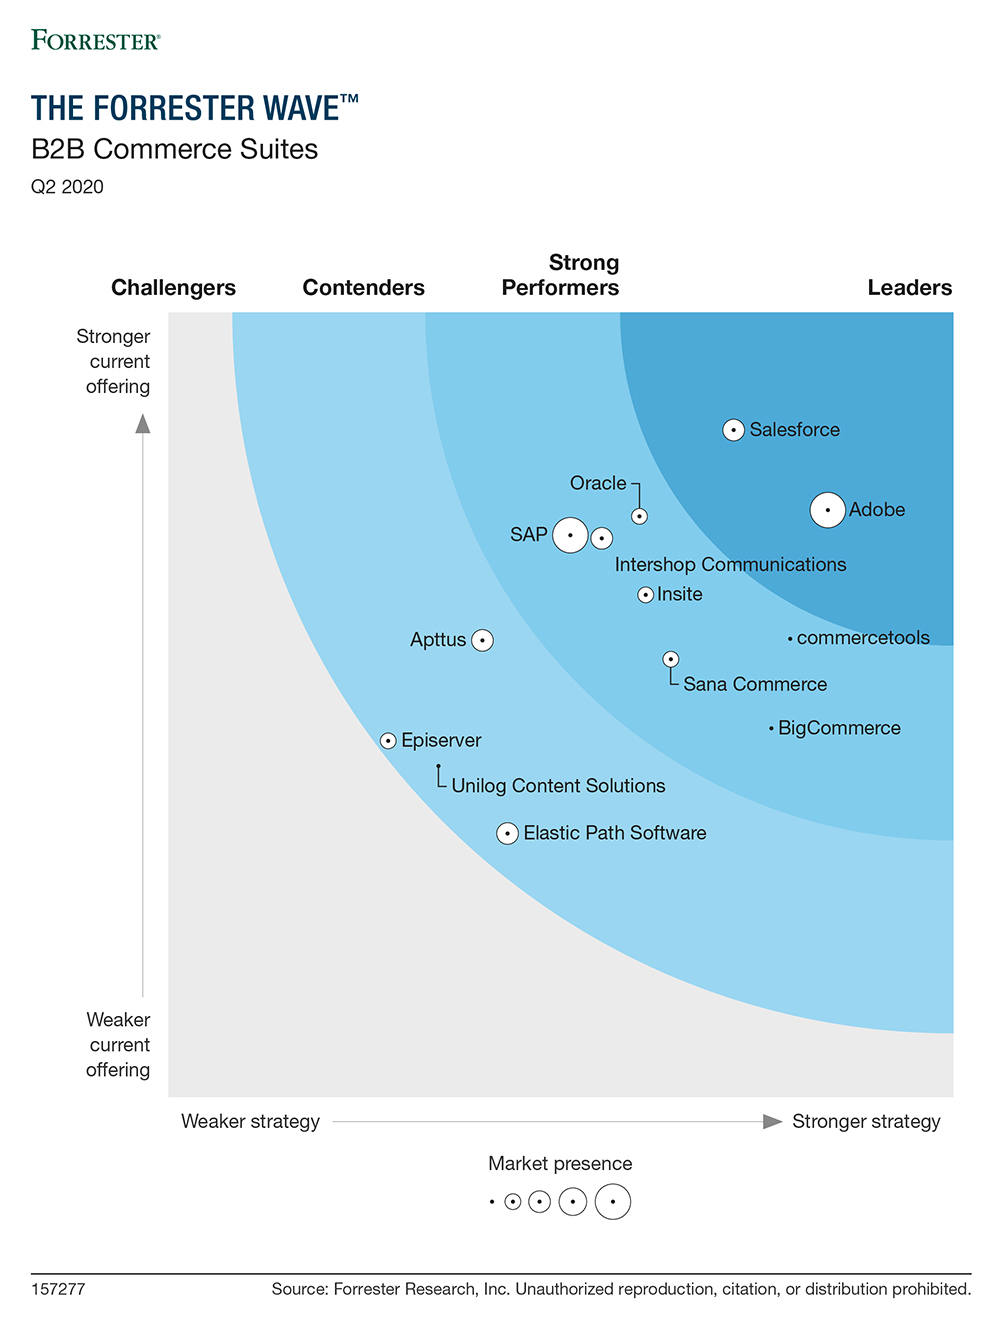 Forrester Wave B2B report